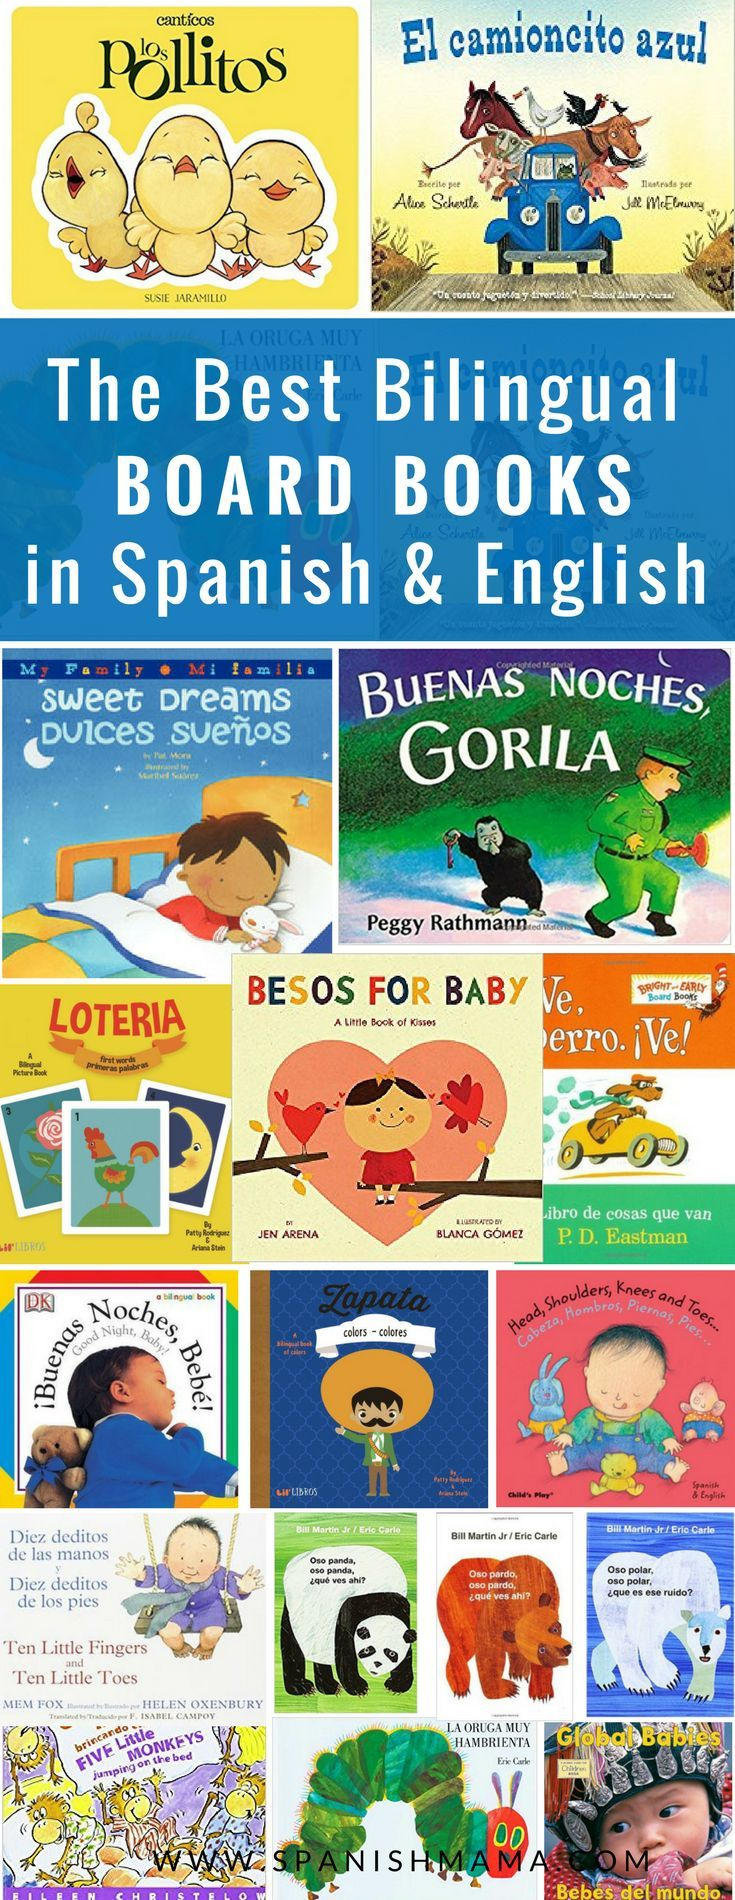 Spanish board books for babies and toddlers. Find the best bilingual books for little hands!